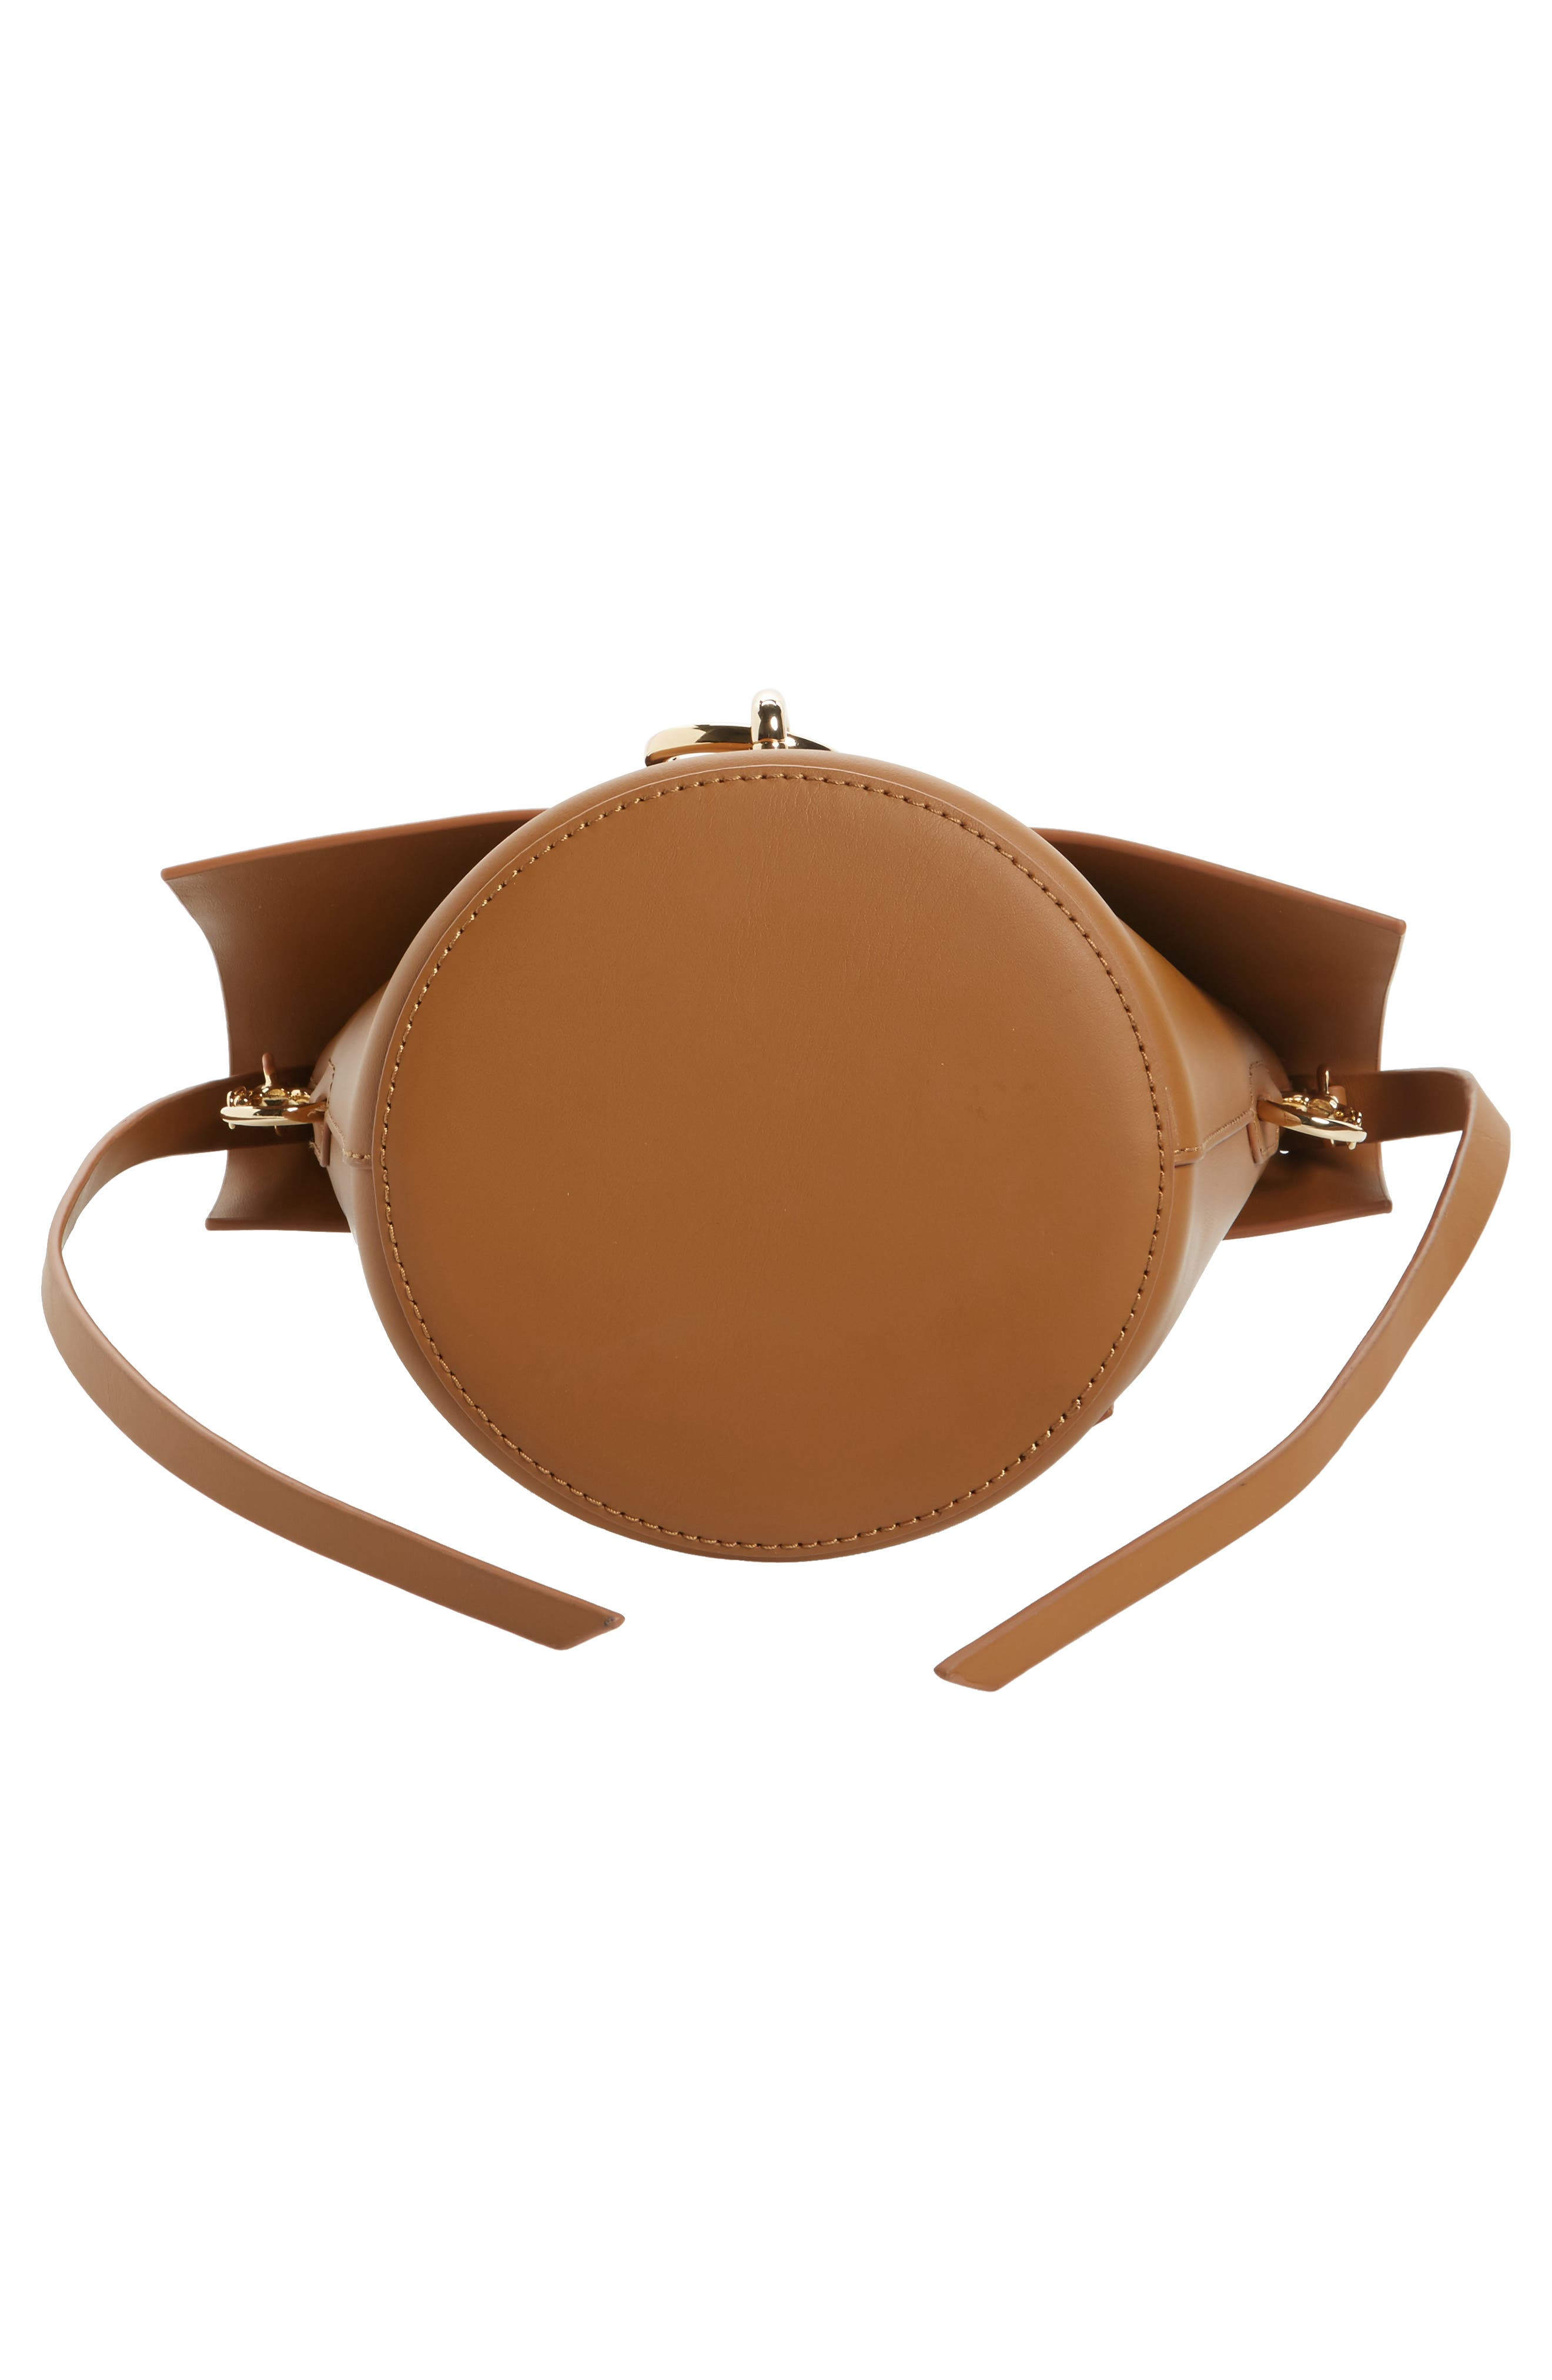 Belay Leather Crossbody Bag,                             Alternate thumbnail 24, color,